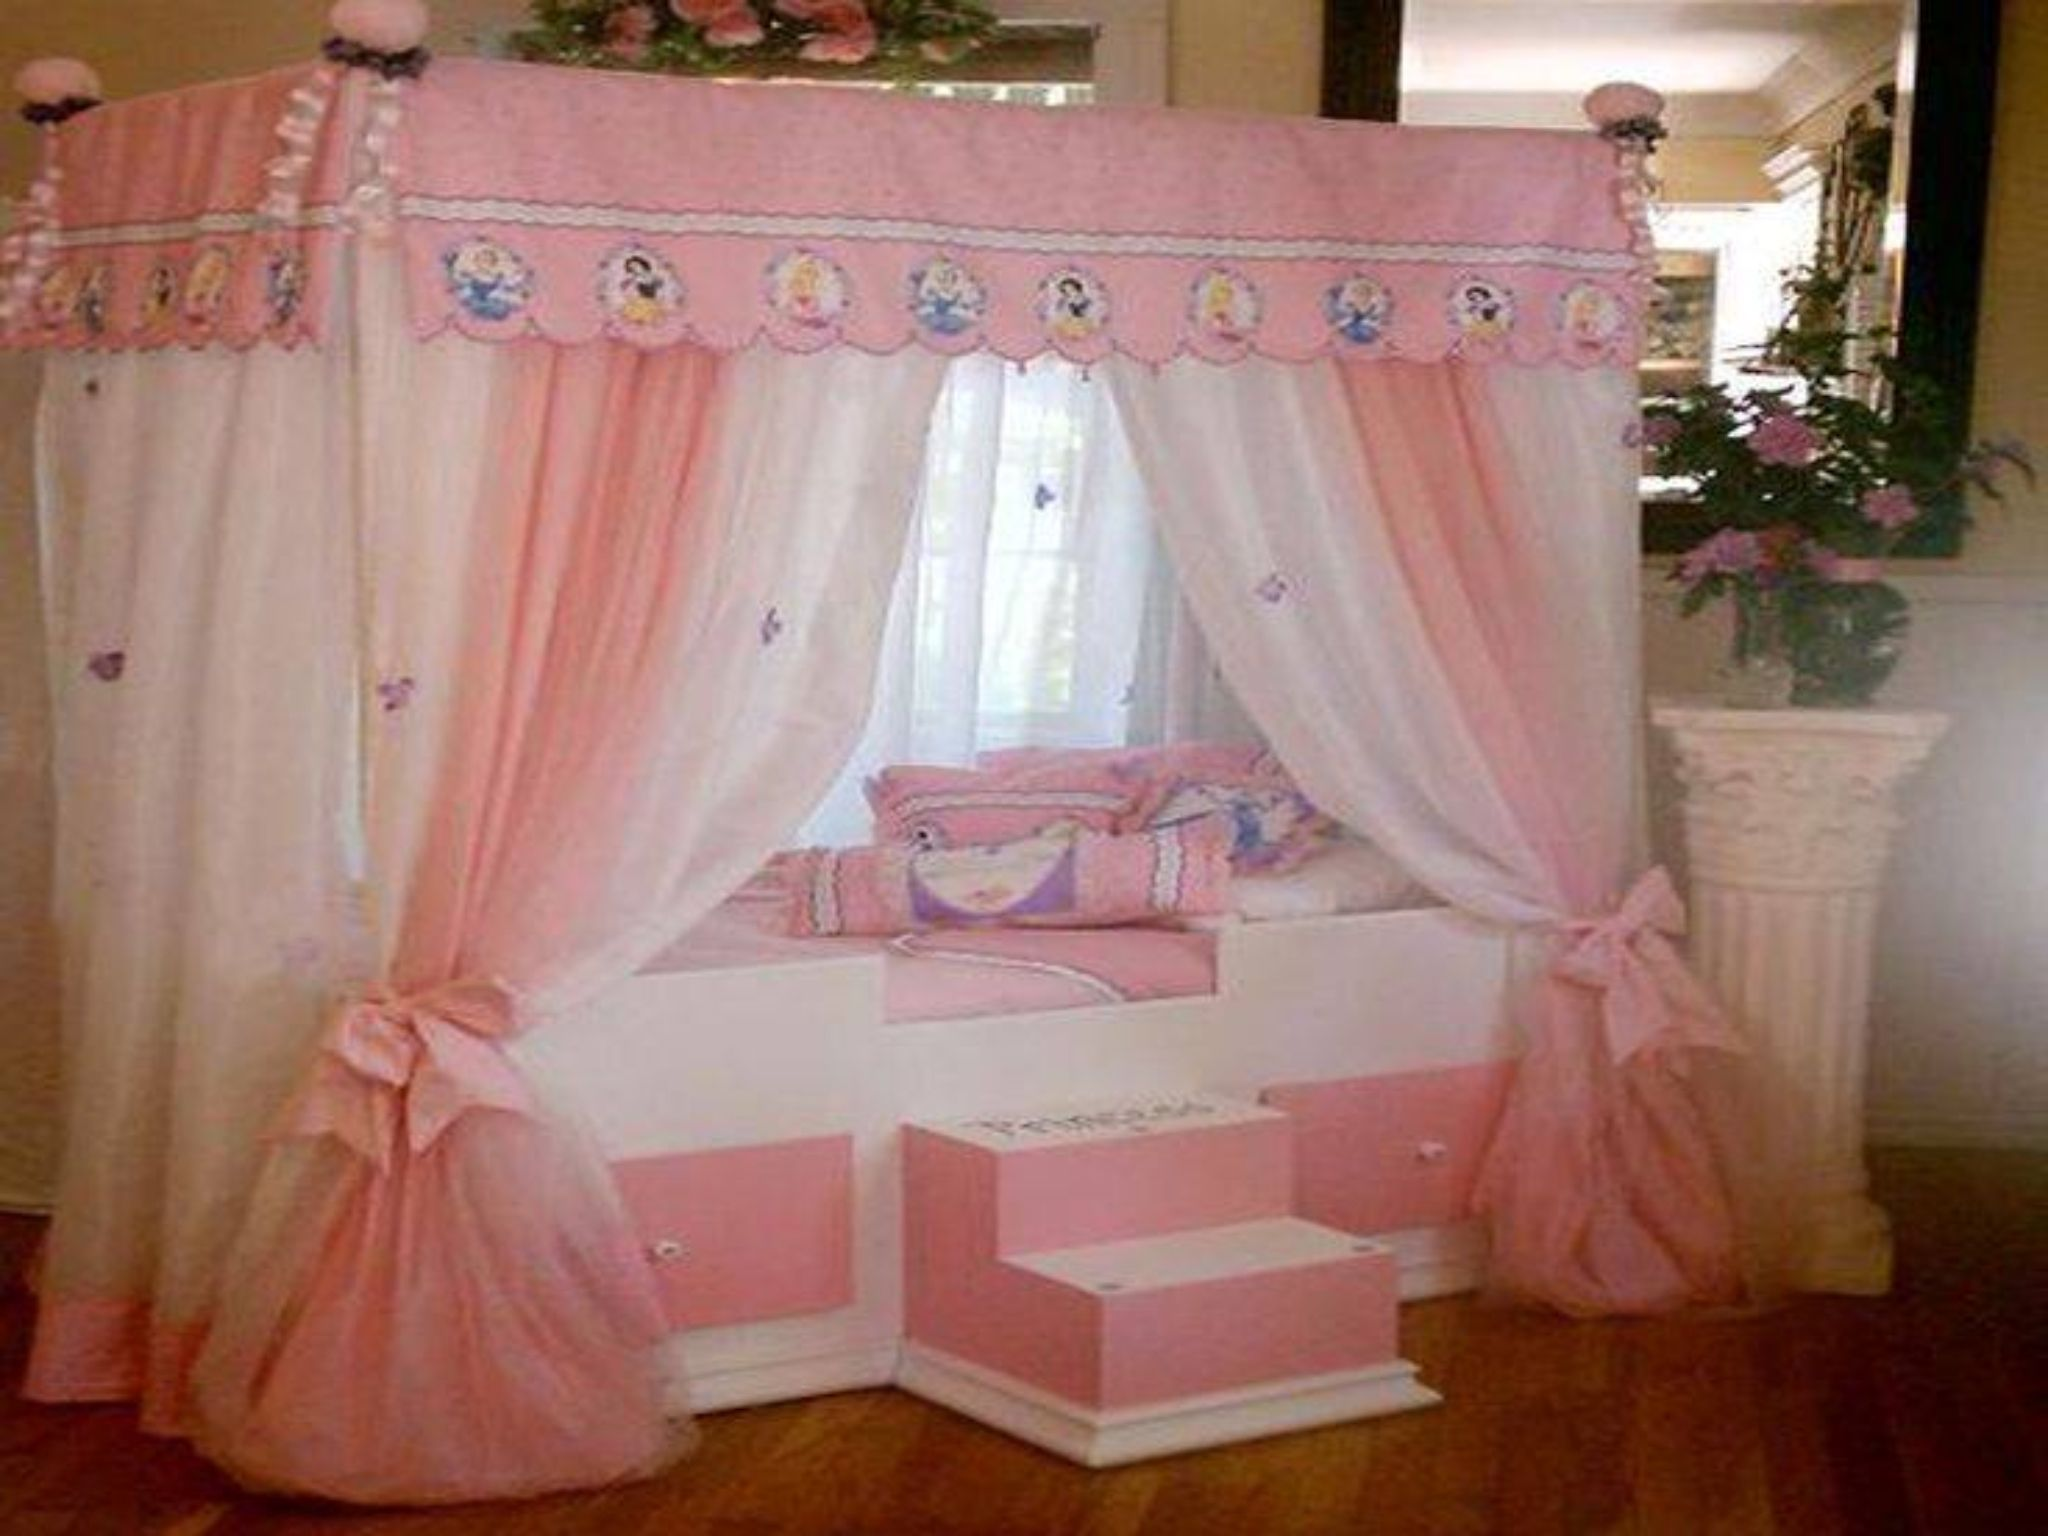 Lit Princesse Baldaquin Perfect For A Princess Little Princess Pinterest Lit